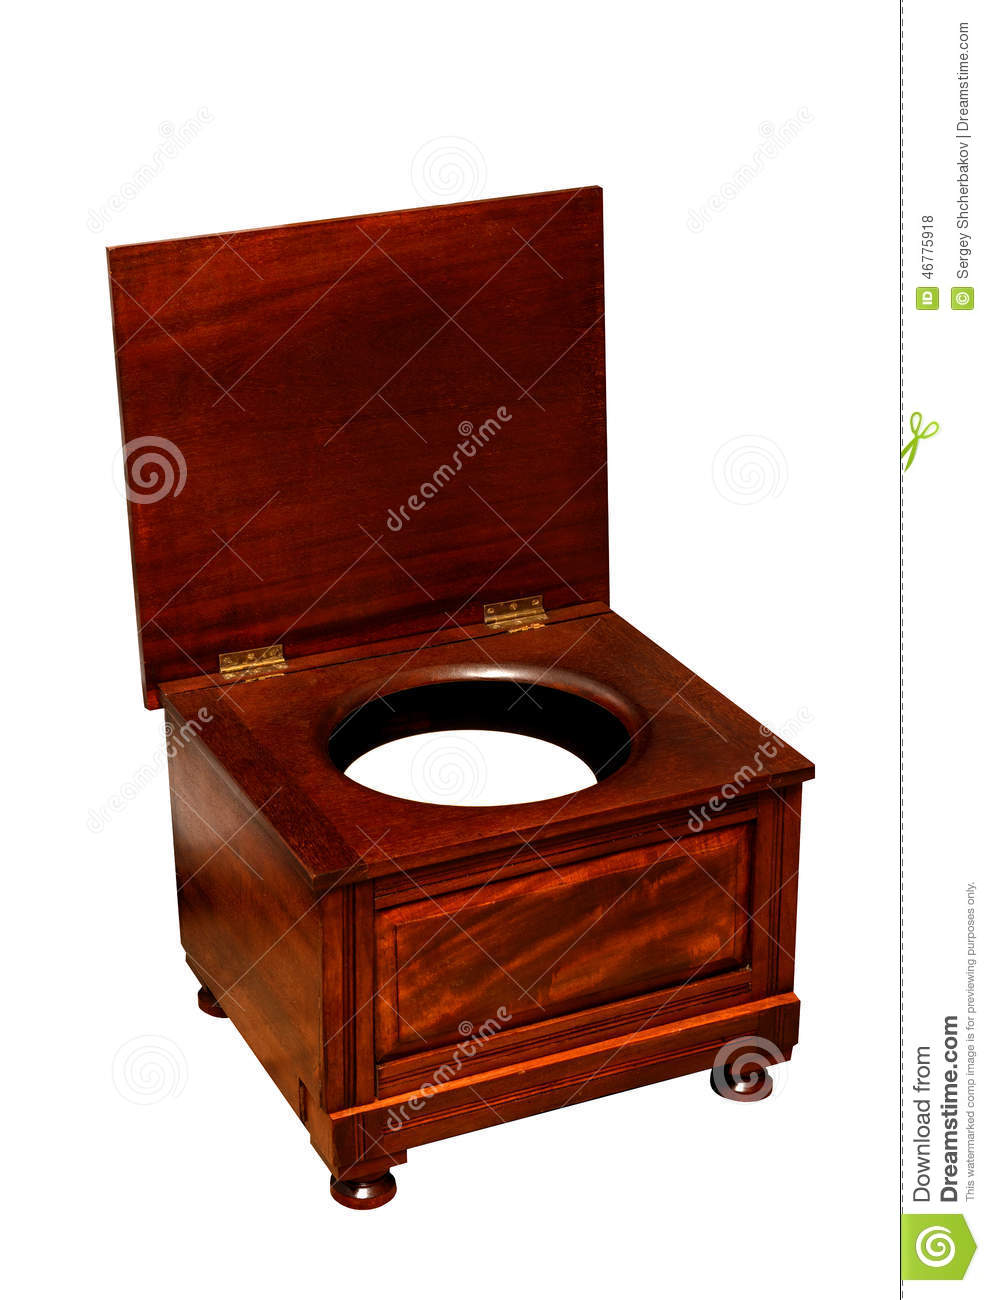 Antique wooden toilet chair - Old Toilet With Chamber Pot An Wooden Chair Stock Photo Image